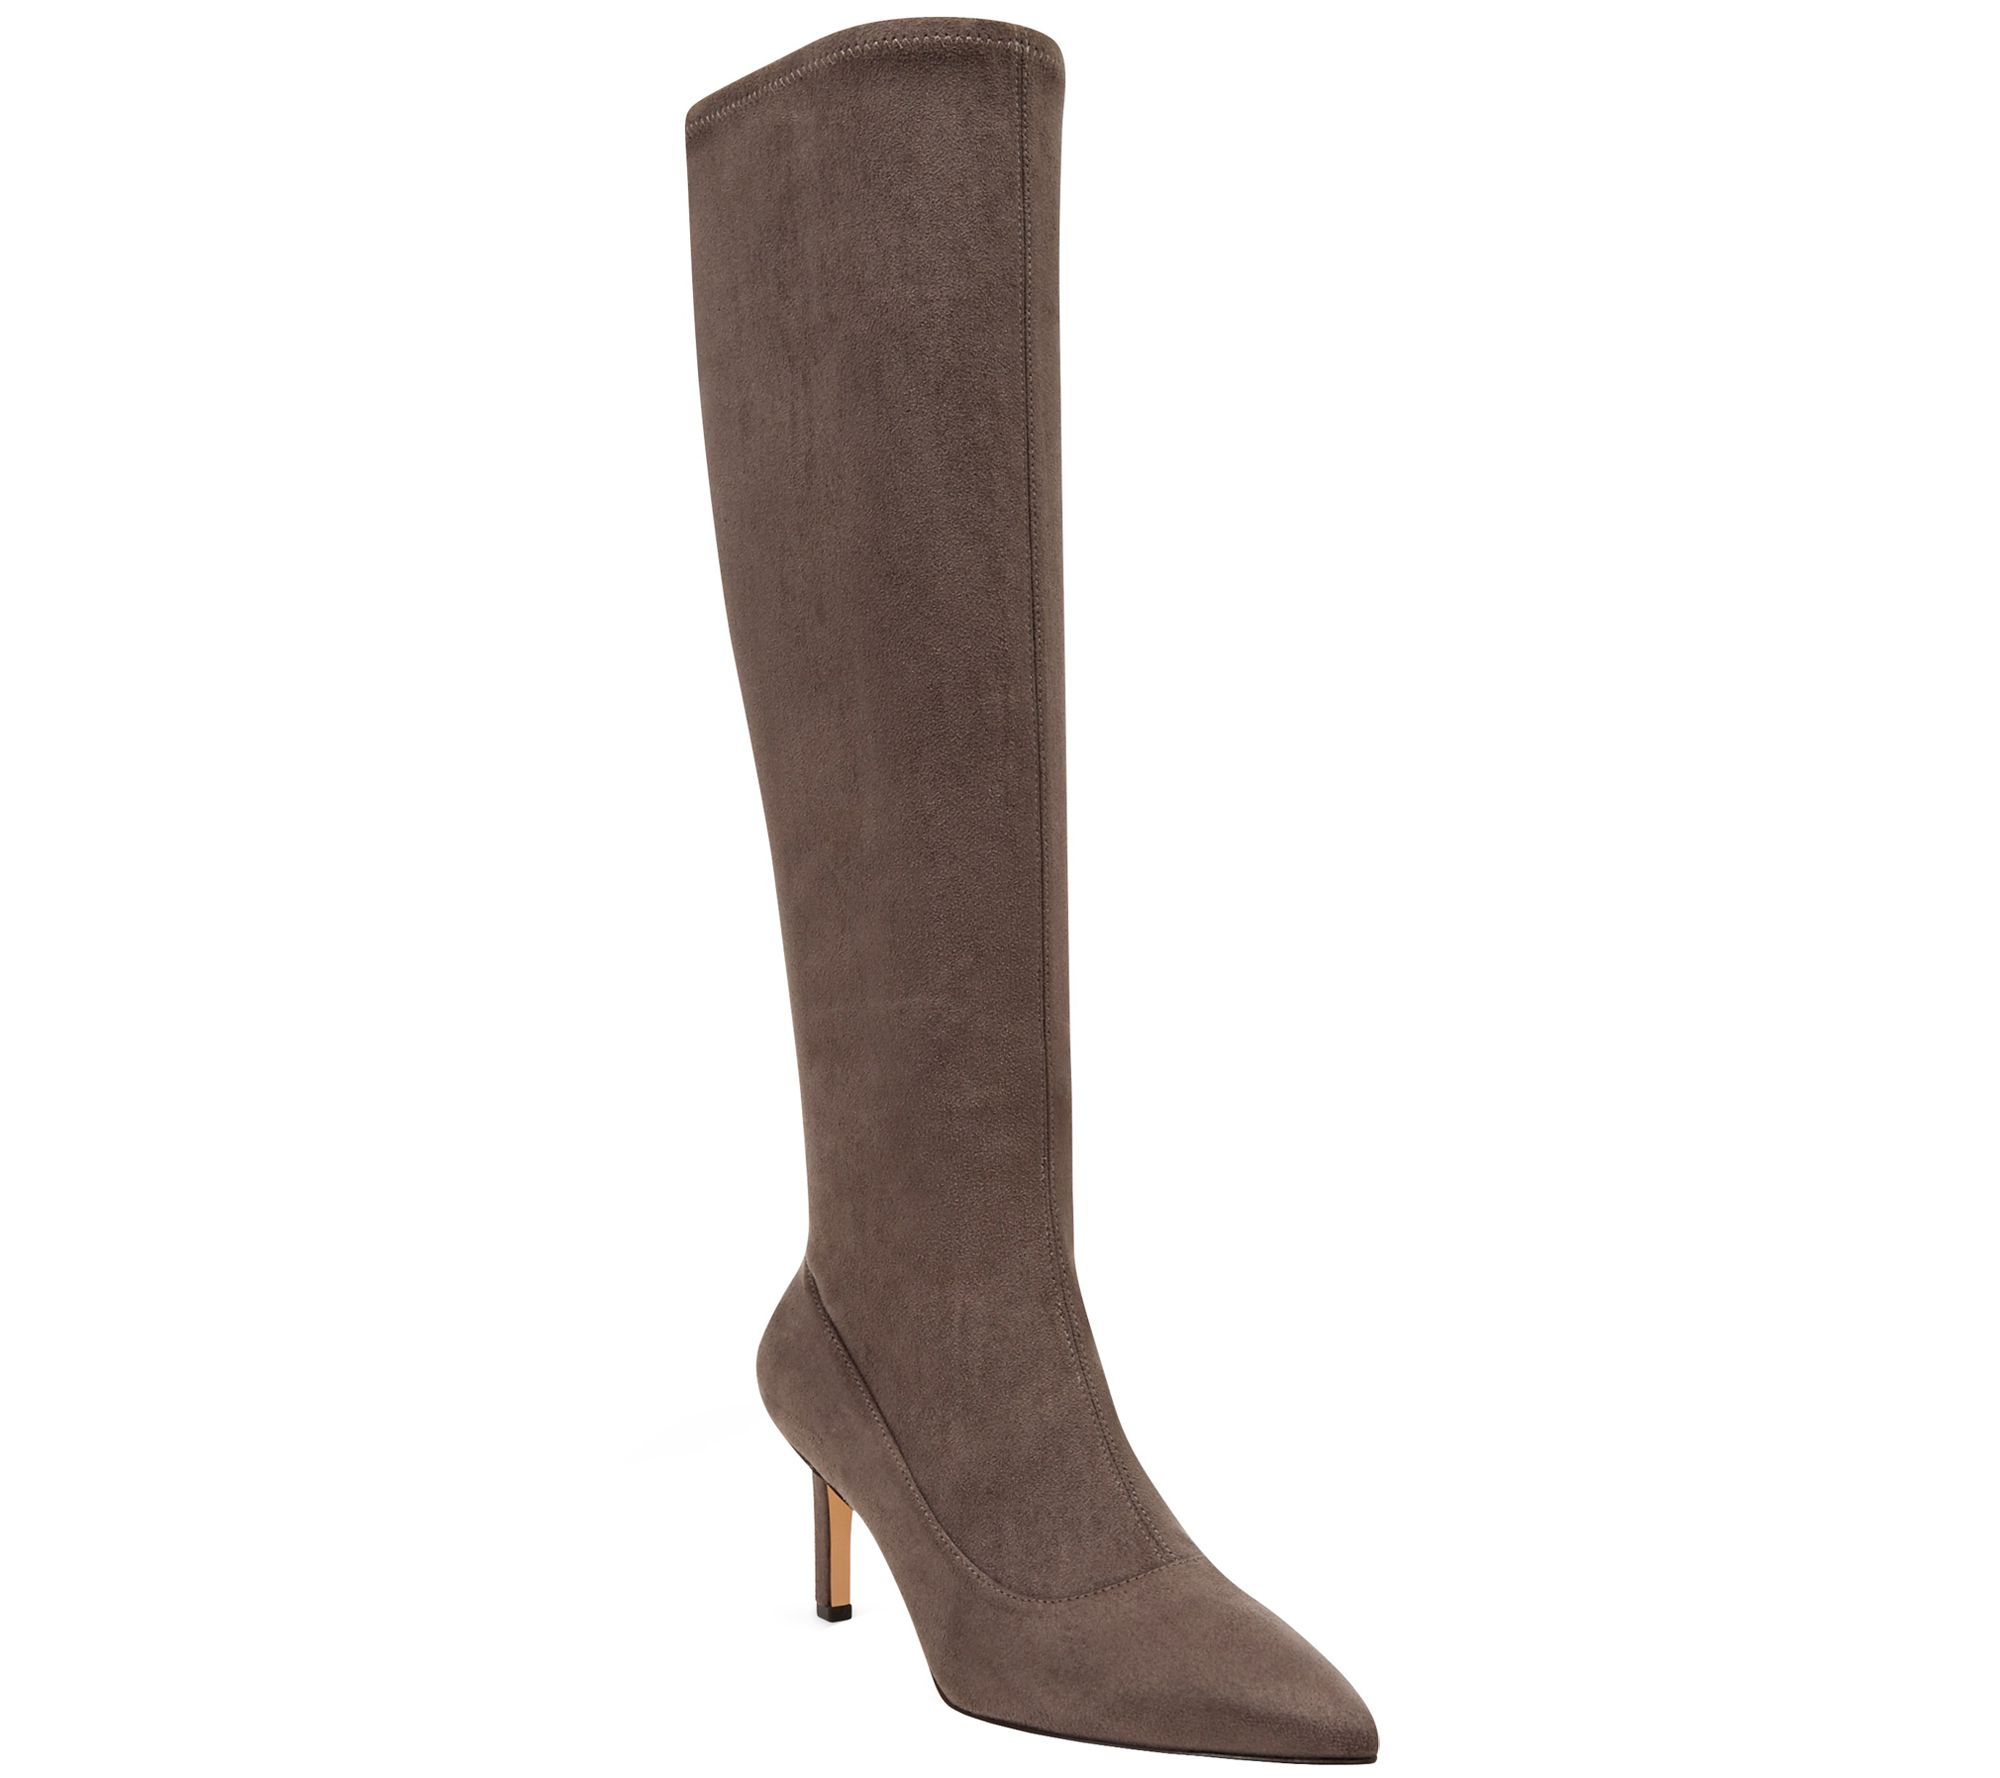 boot boutique u2014 women u0027s boots u0026 fashion boots u2014 qvc com